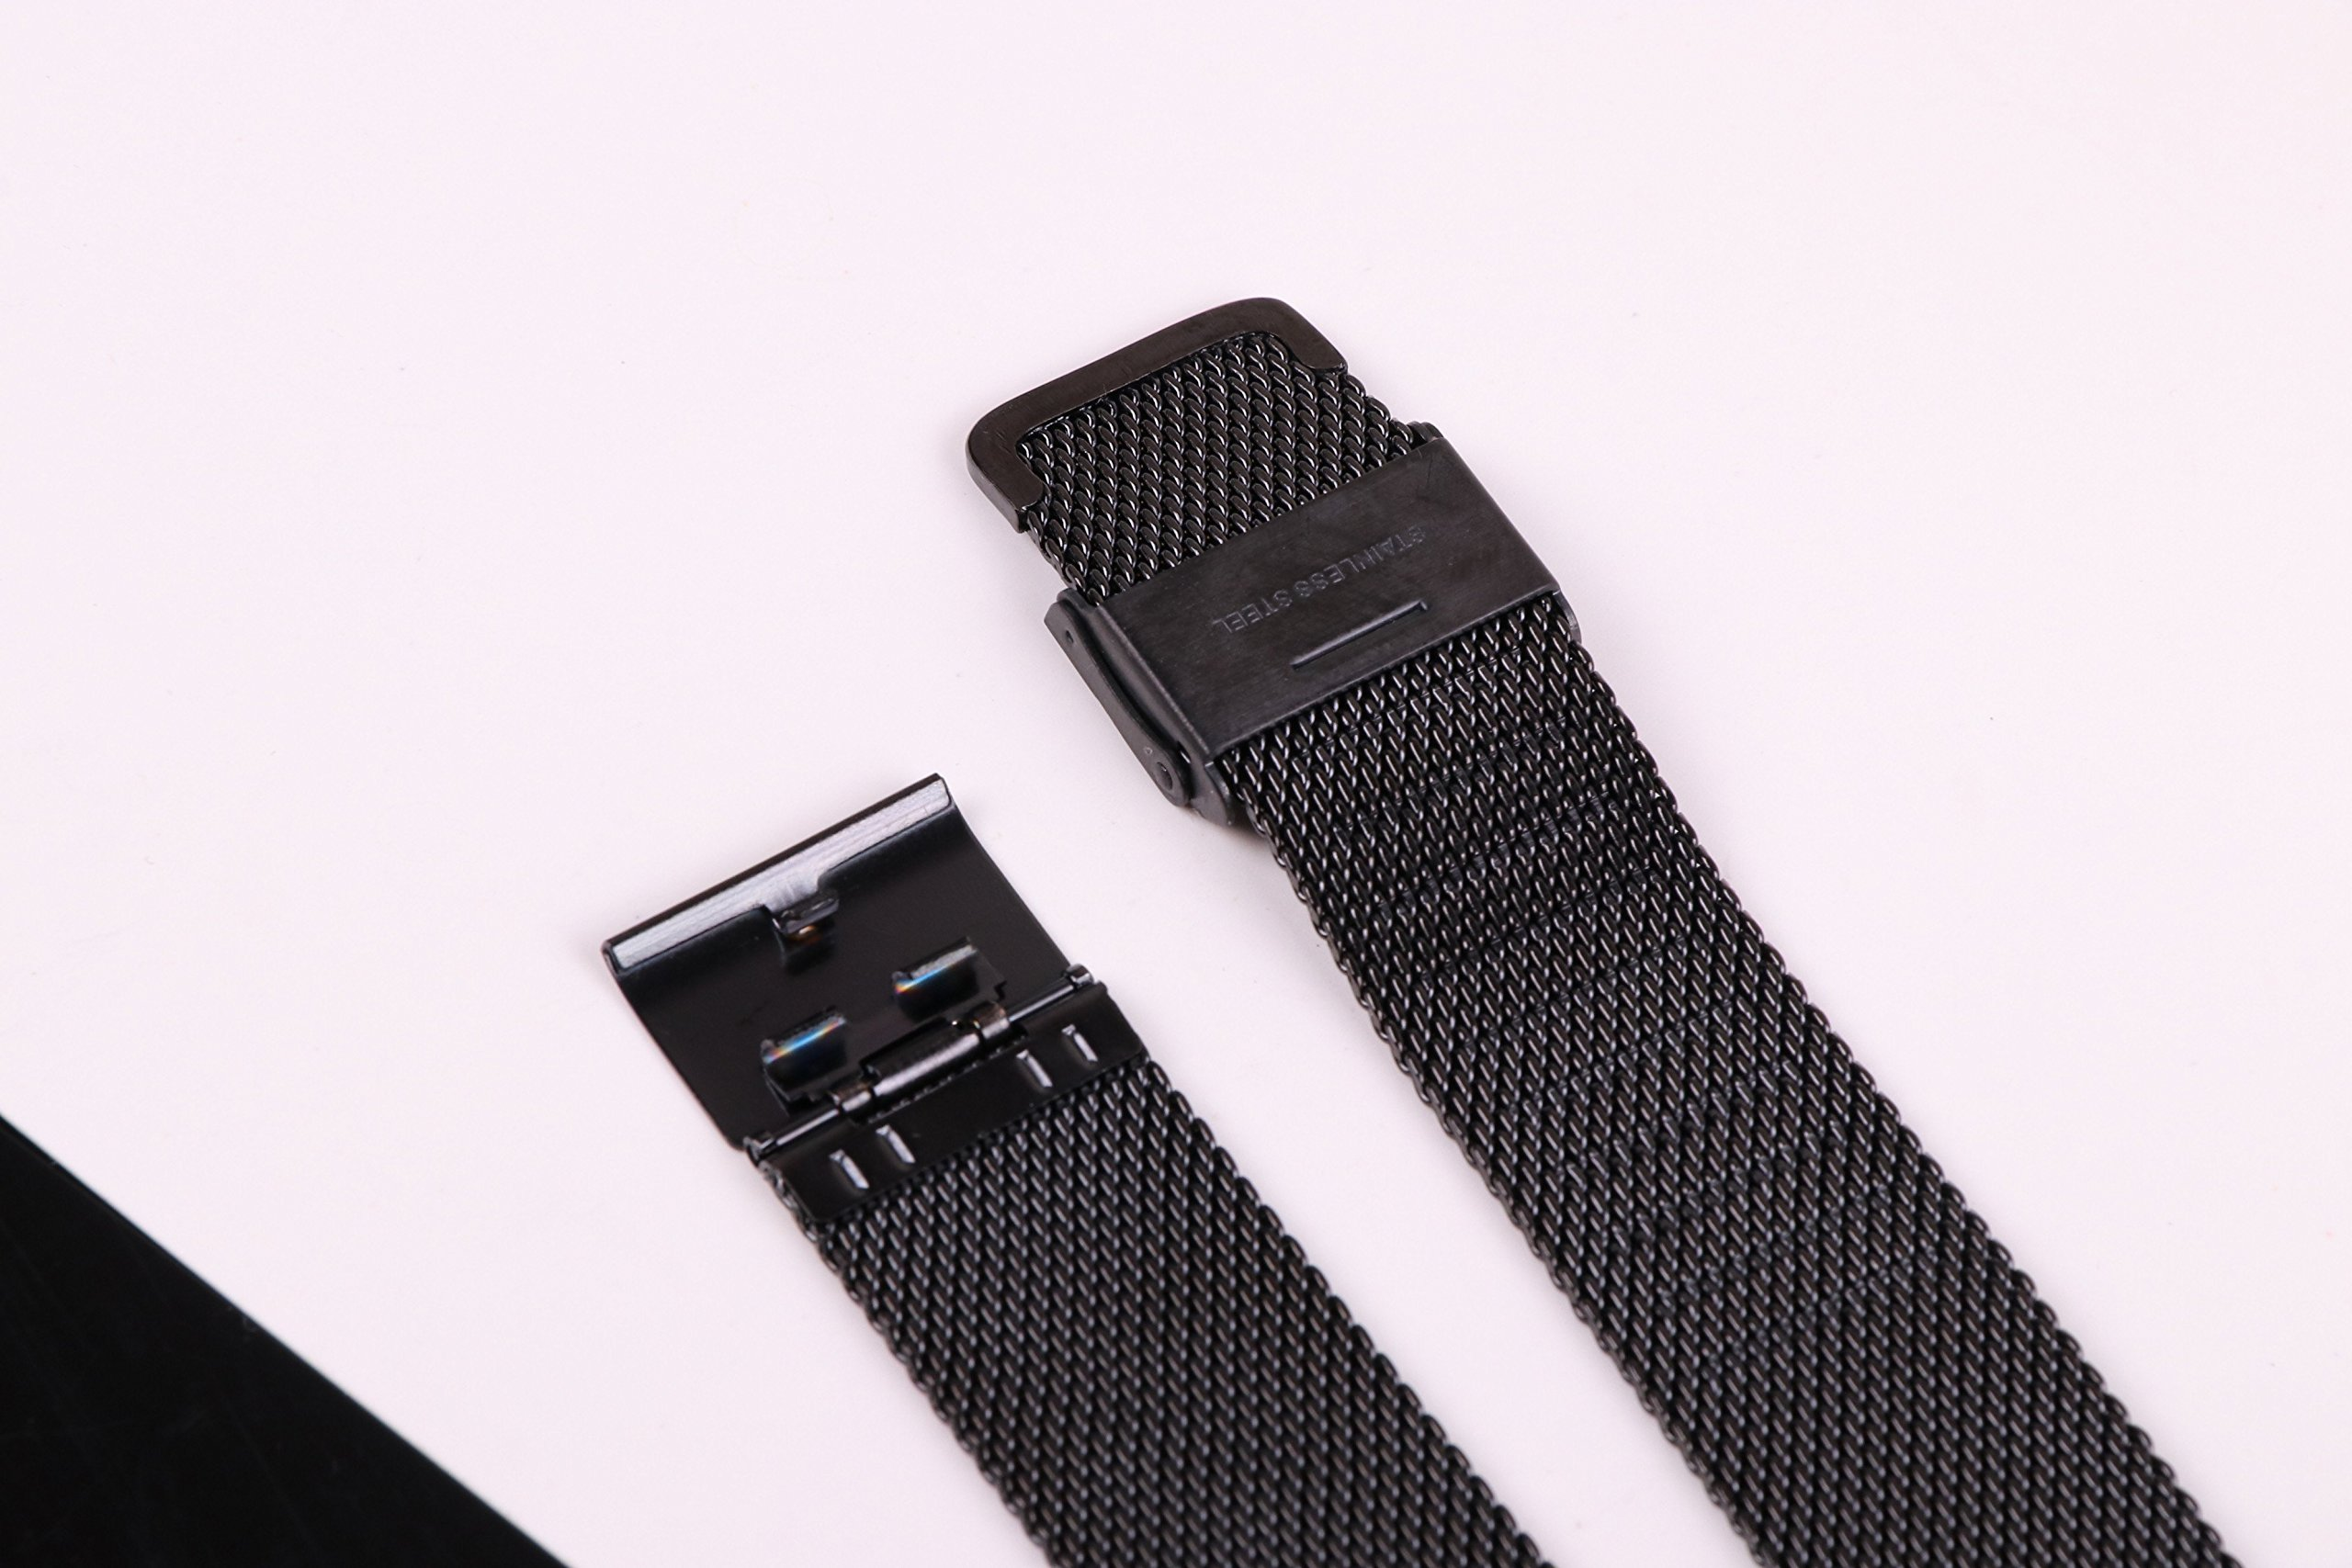 20mm Stainless Steel Mesh Watch Band Black Chainmail Mesh Strap Replacement for Business Sport Watches by autulet (Image #5)